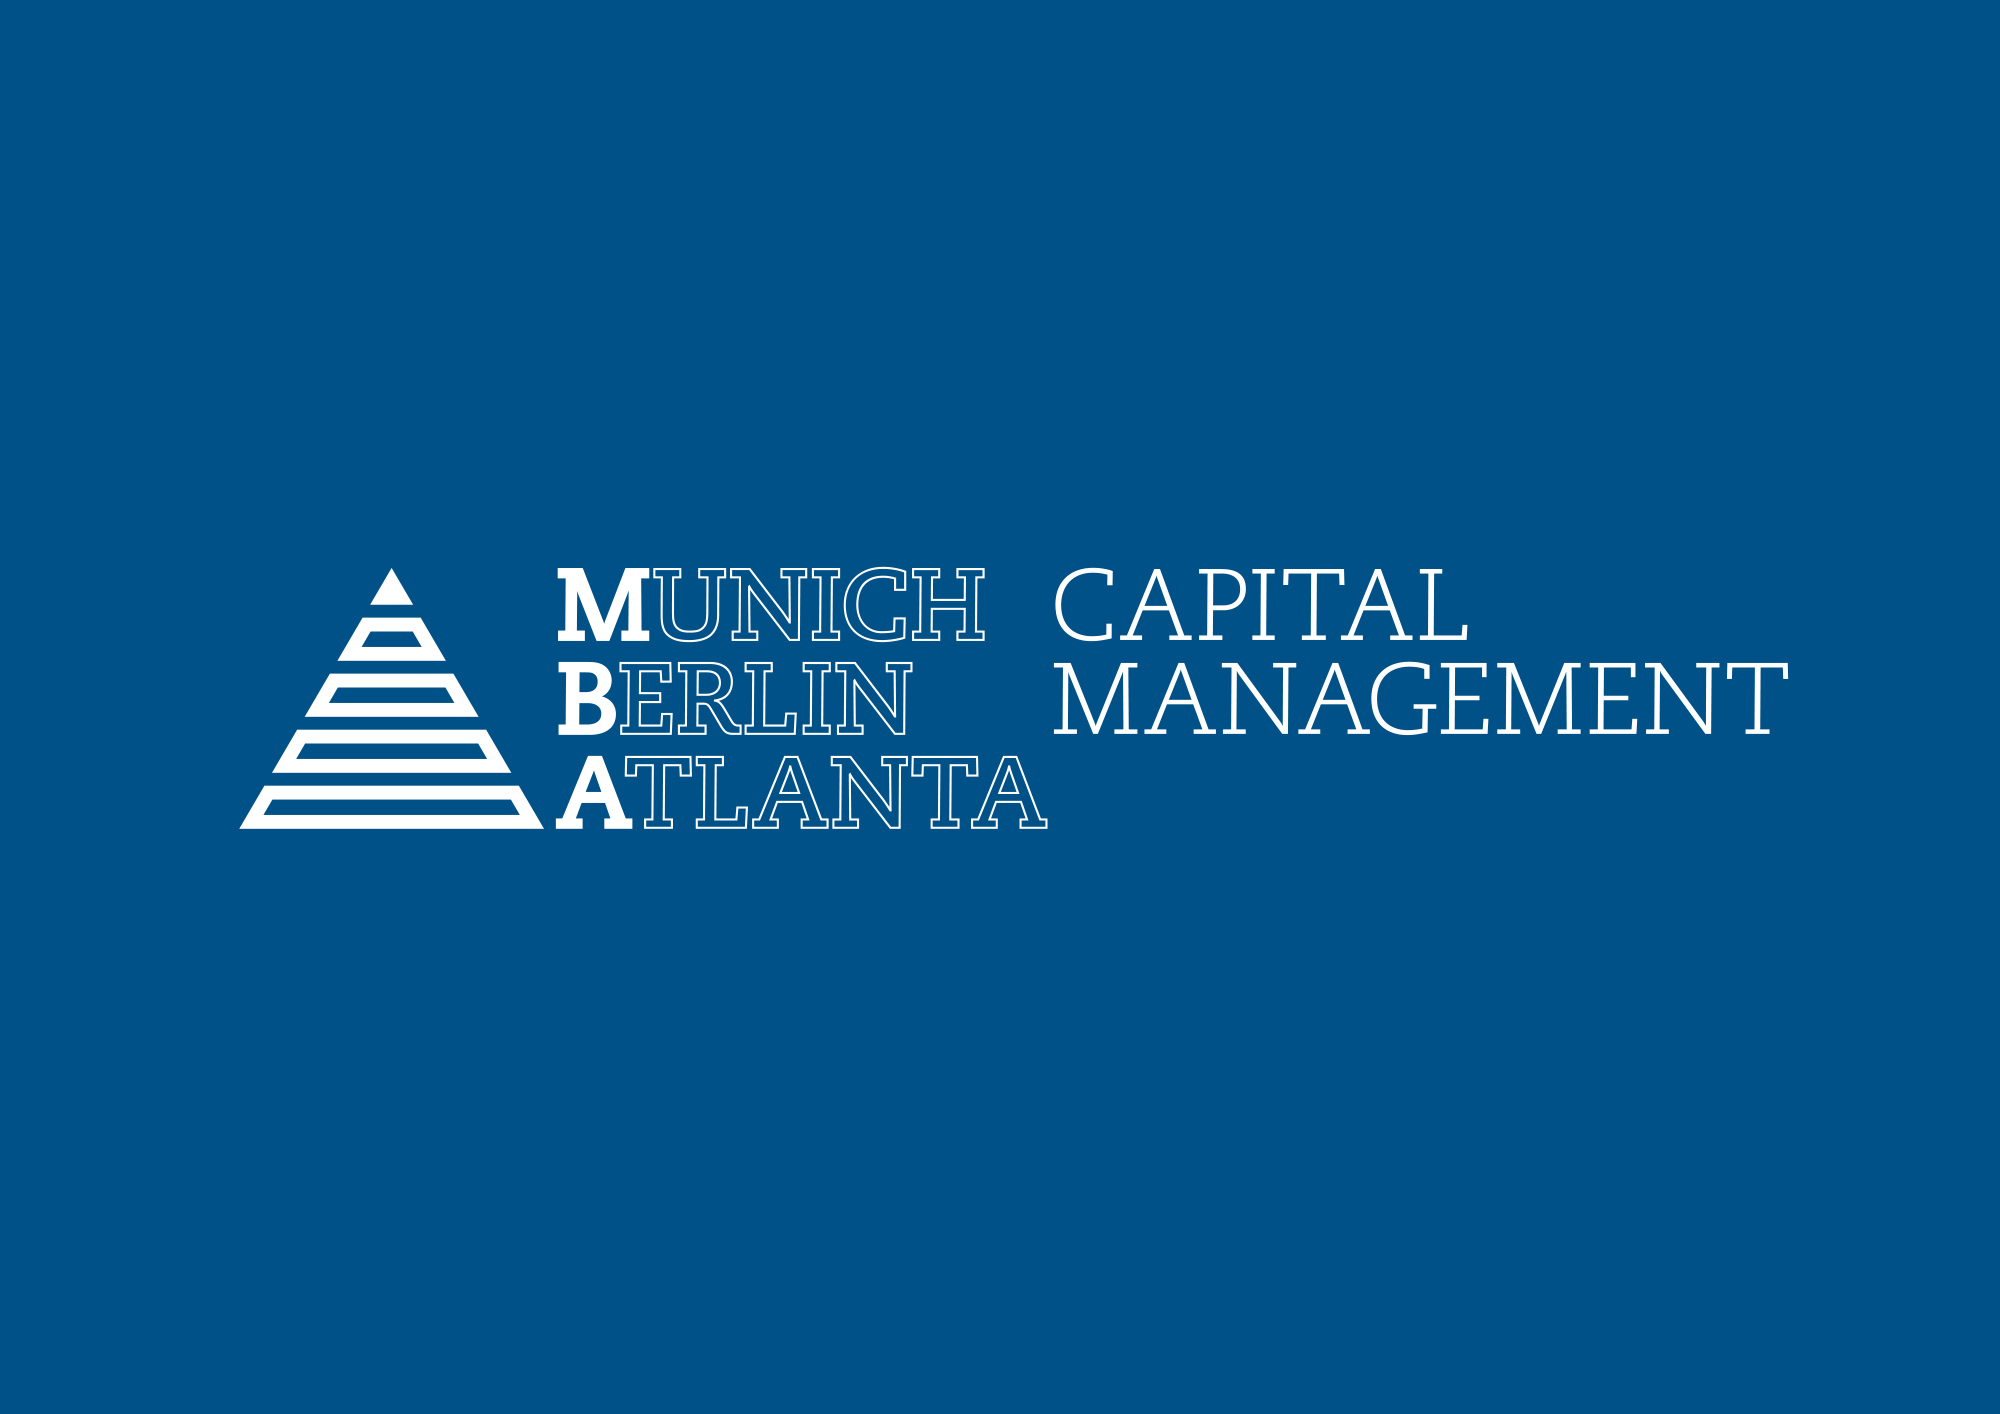 MBA-Management-Logo_Claim_NEG.jpg?fit=2000%2C1414